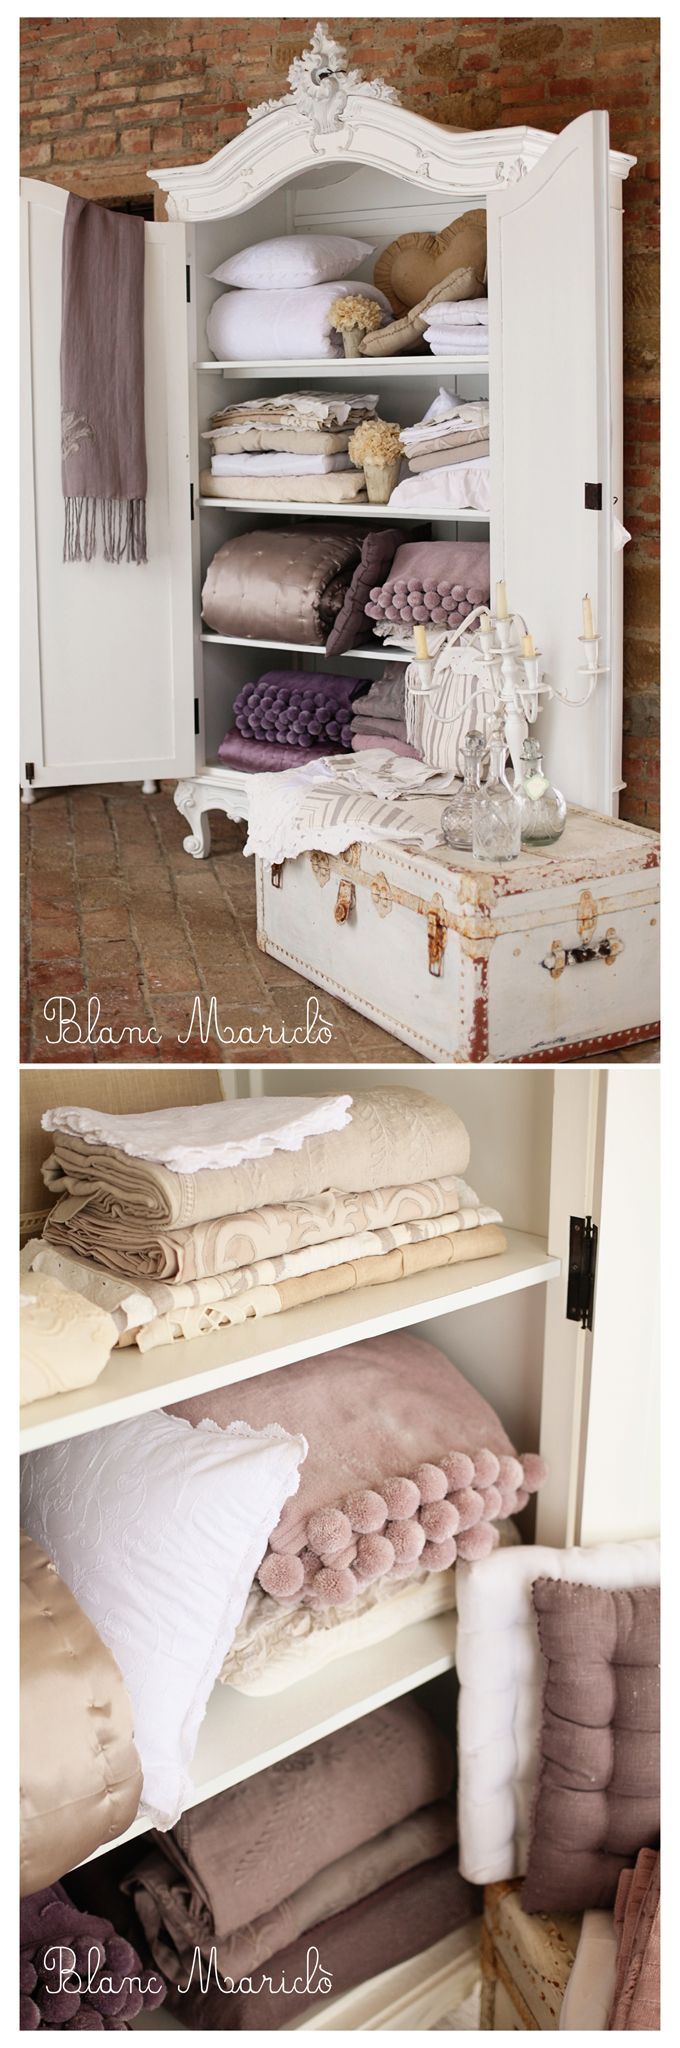 Pin by blanc maricl on shabby chic interiors pinterest for Linge de maison shabby chic